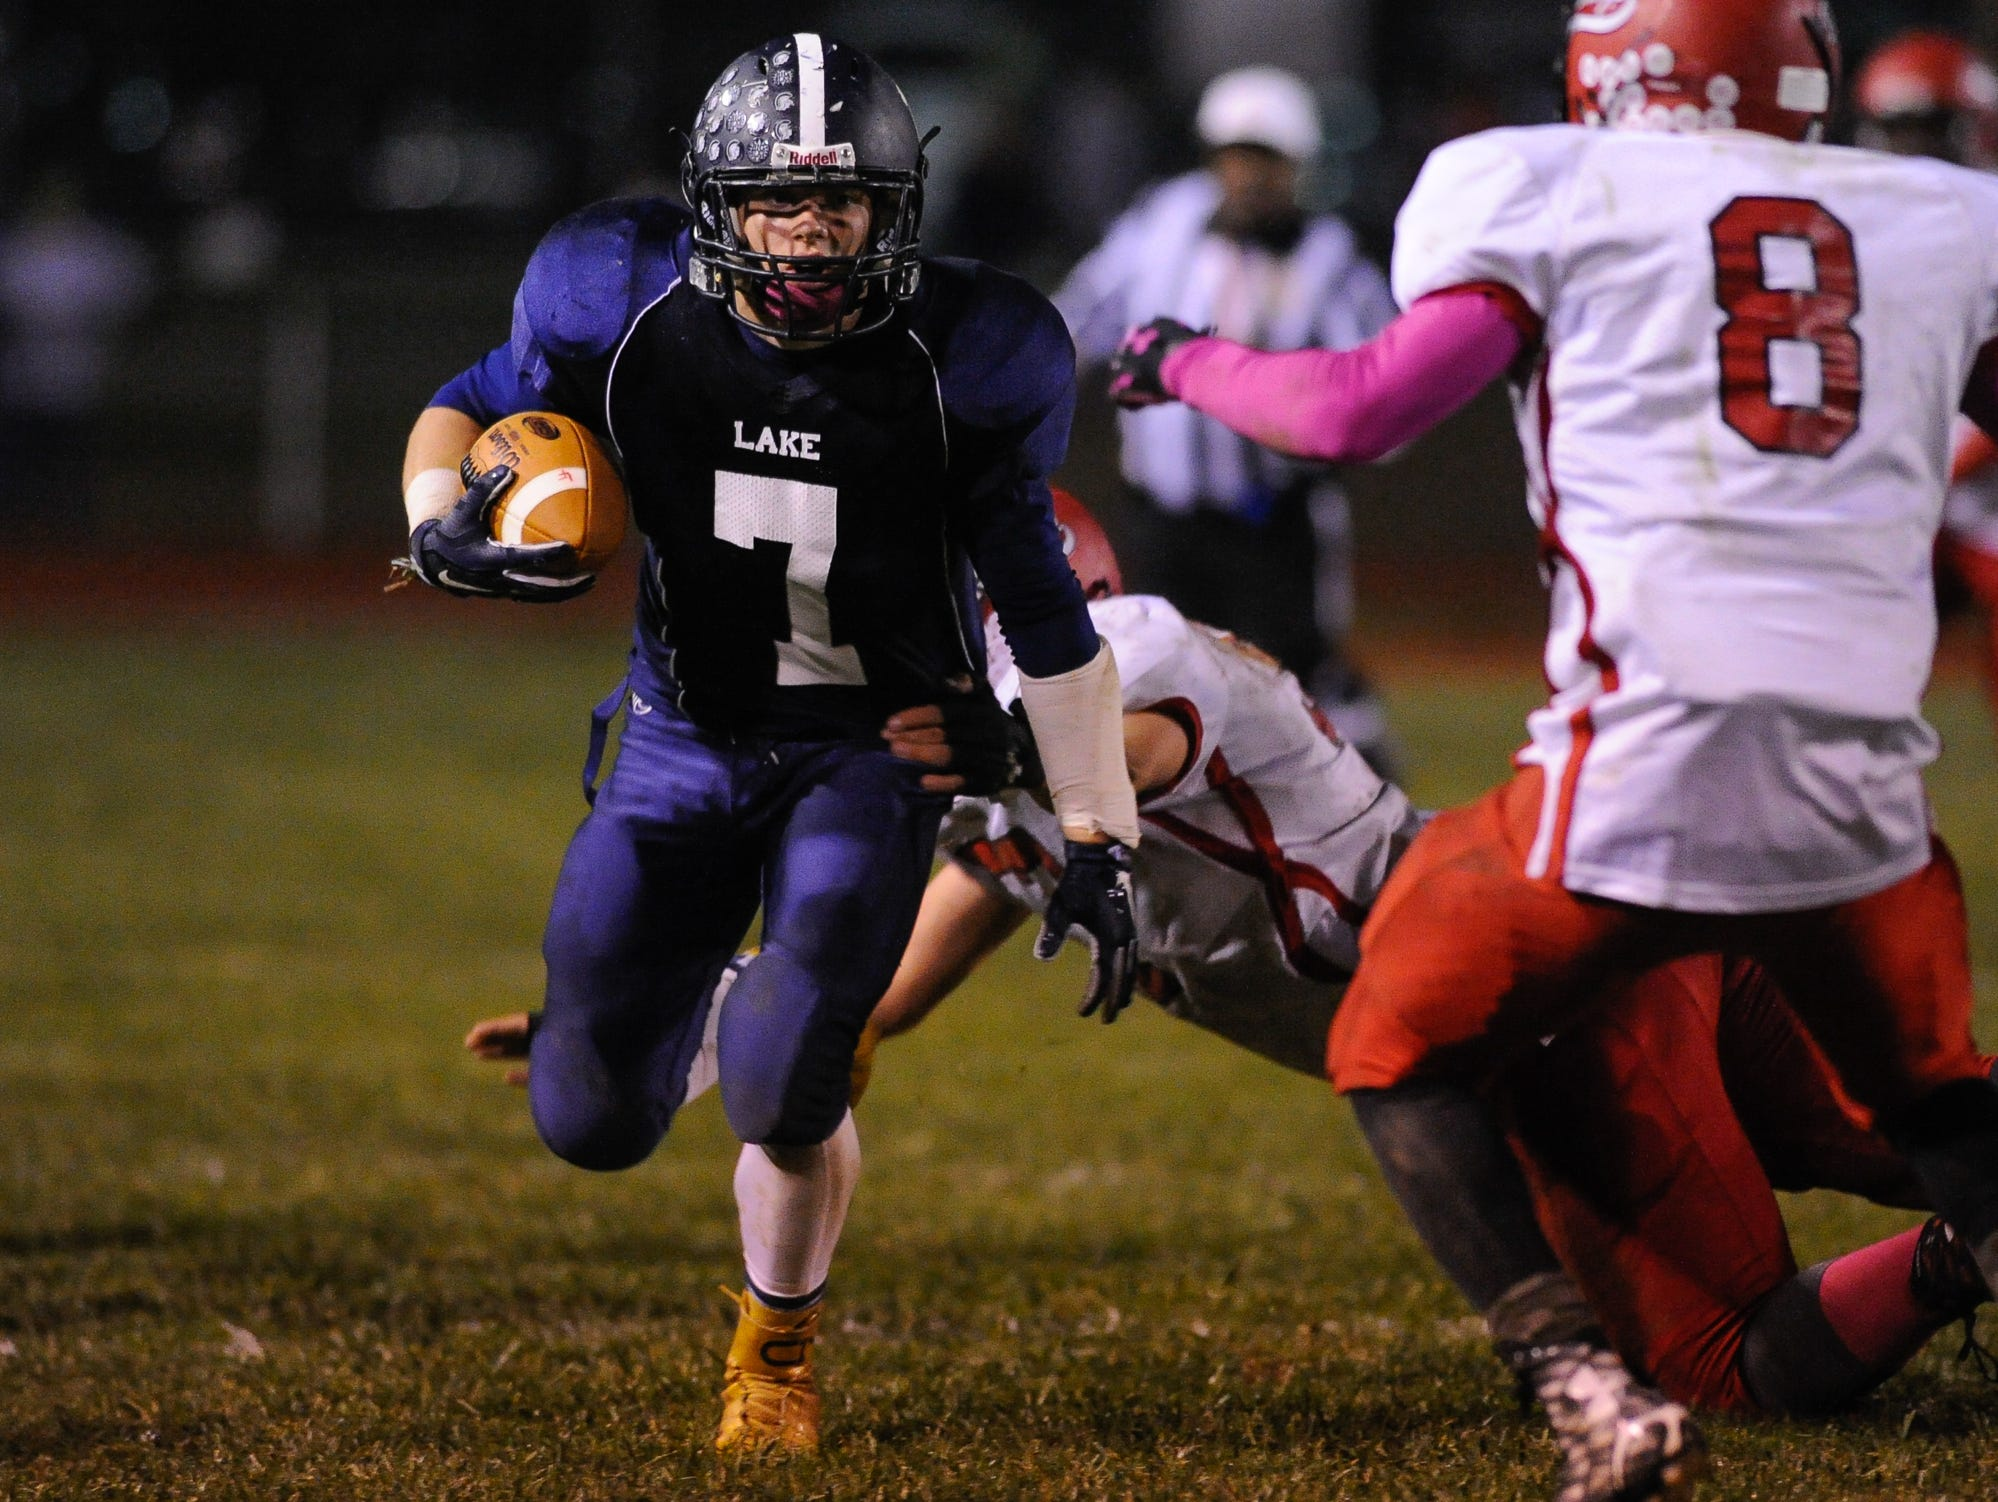 Lake Forest's #7 Benjamin Moore breaks a tackle near the side line in their home game against Laurel.